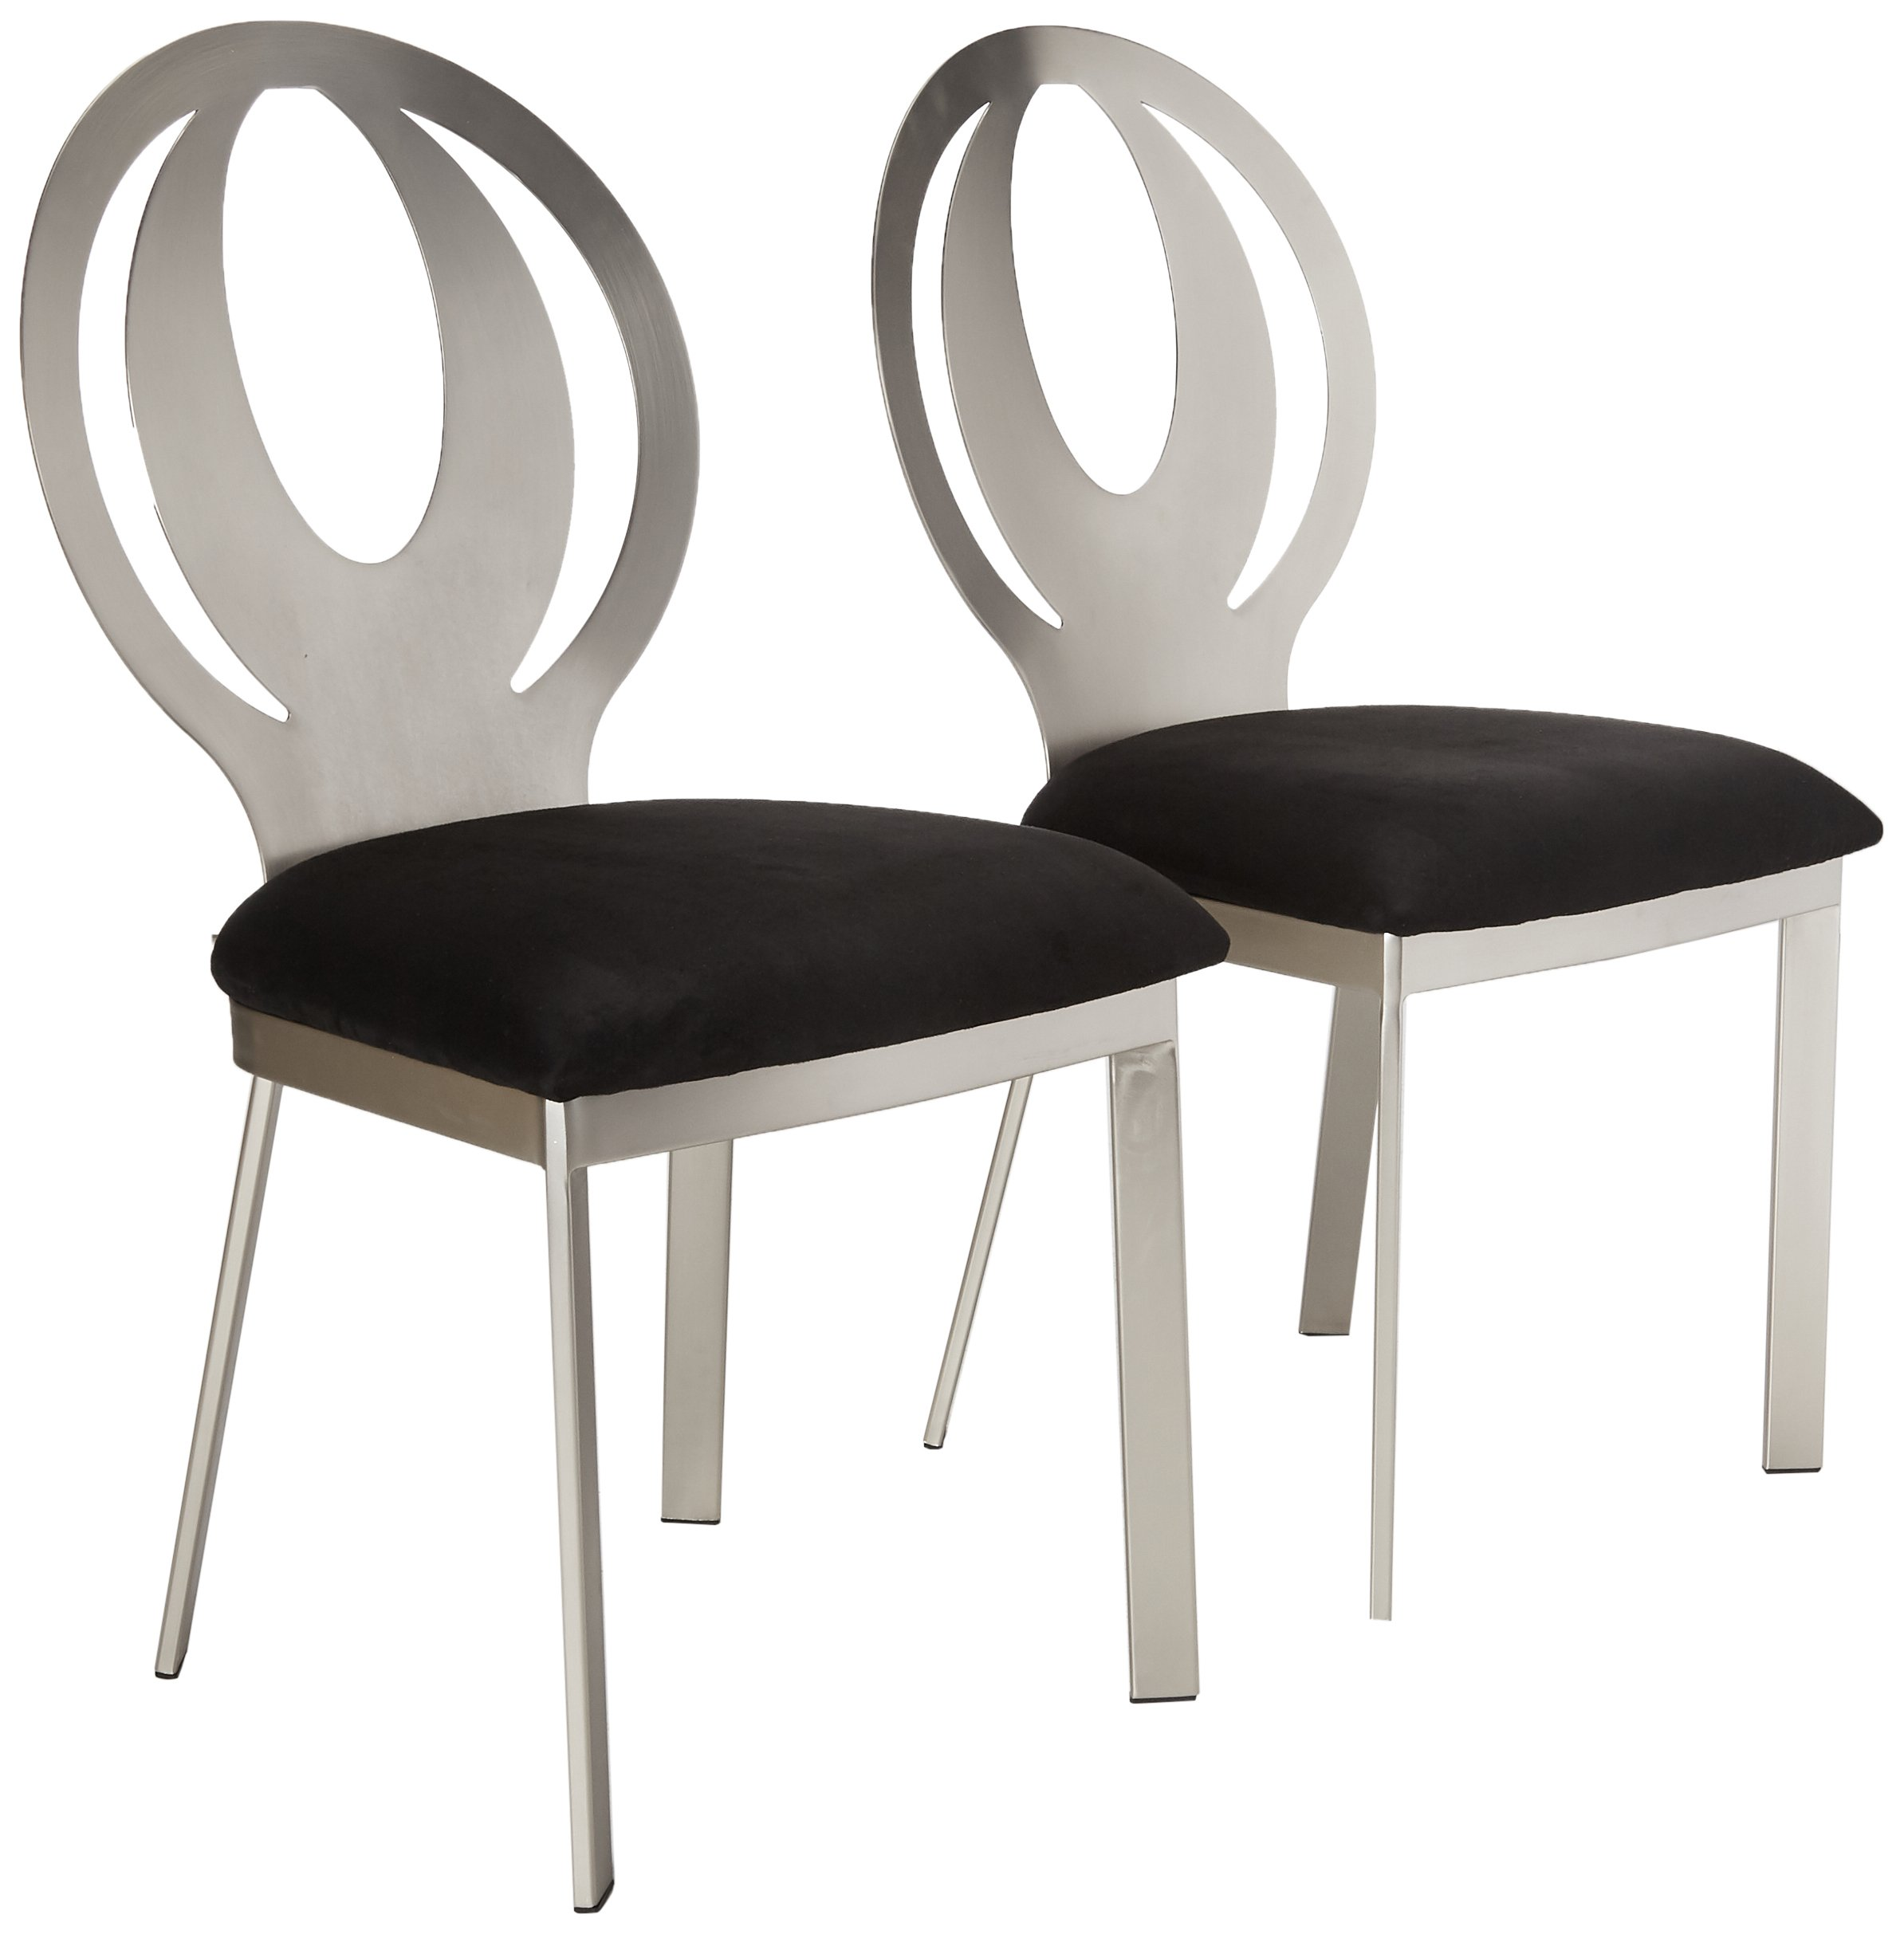 247SHOPATHOME IDF-3726SC Dining-Chairs, Satin